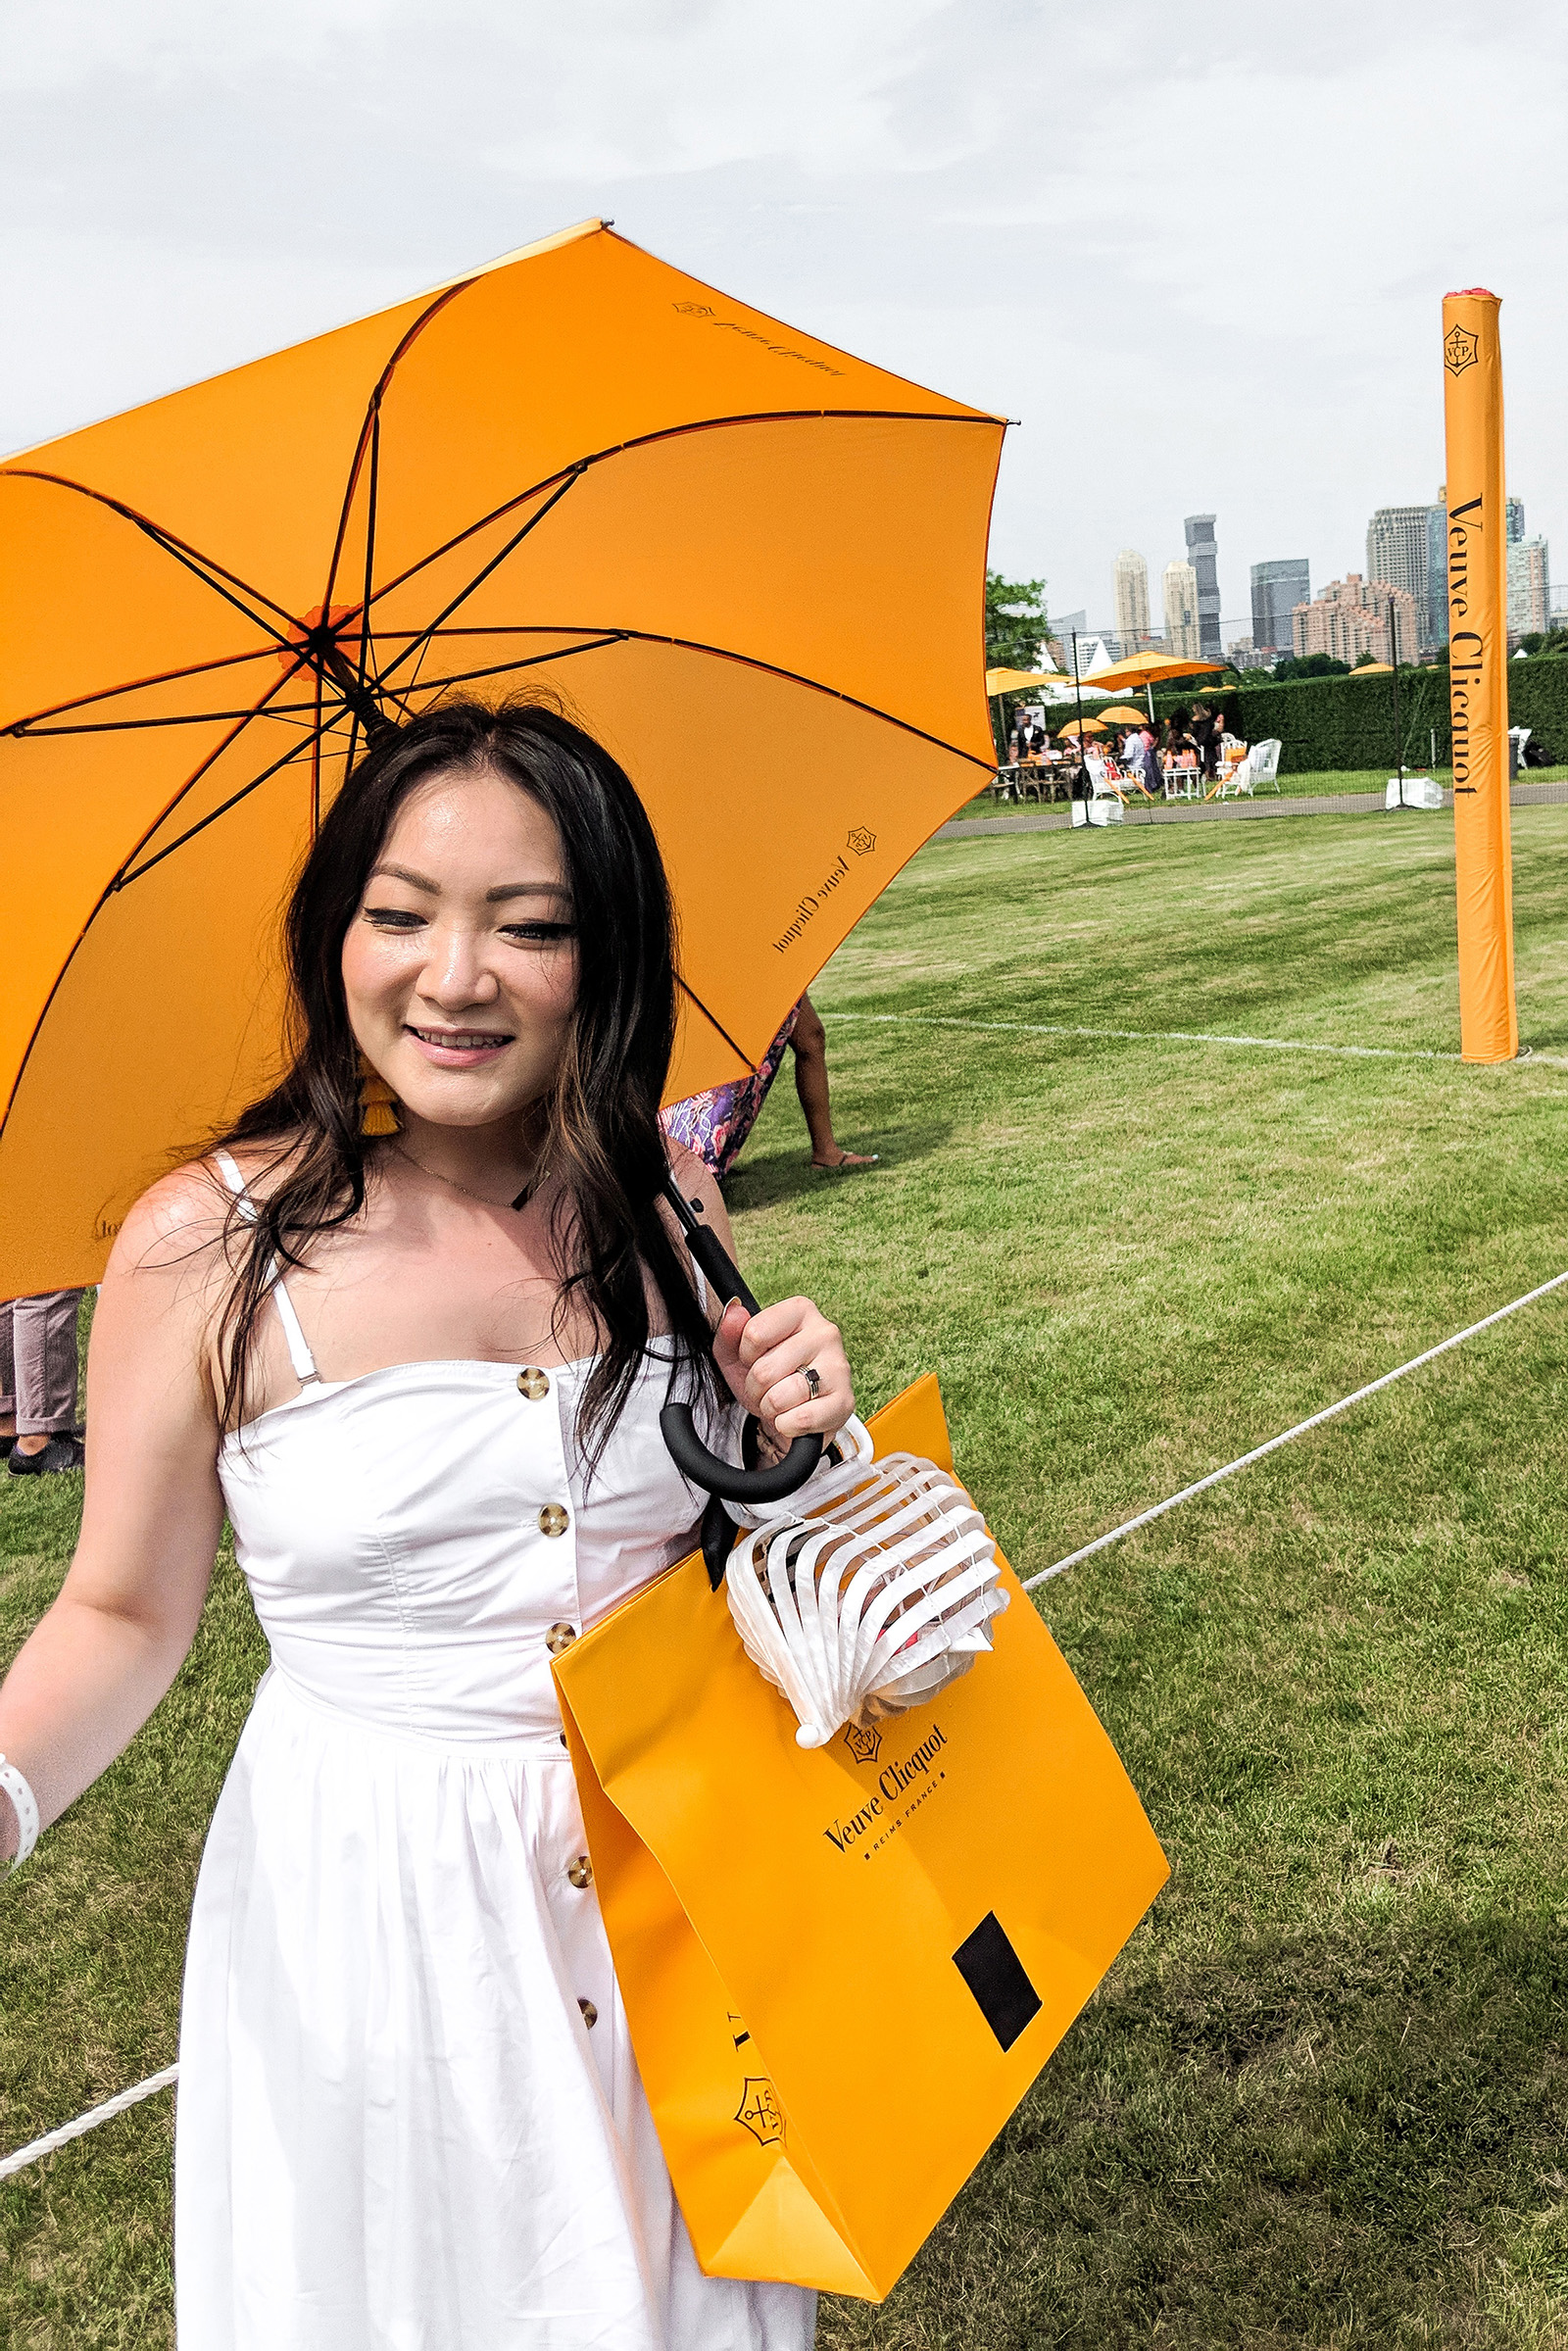 11TH VEUVE CLICQUOT POLO CLASSIC